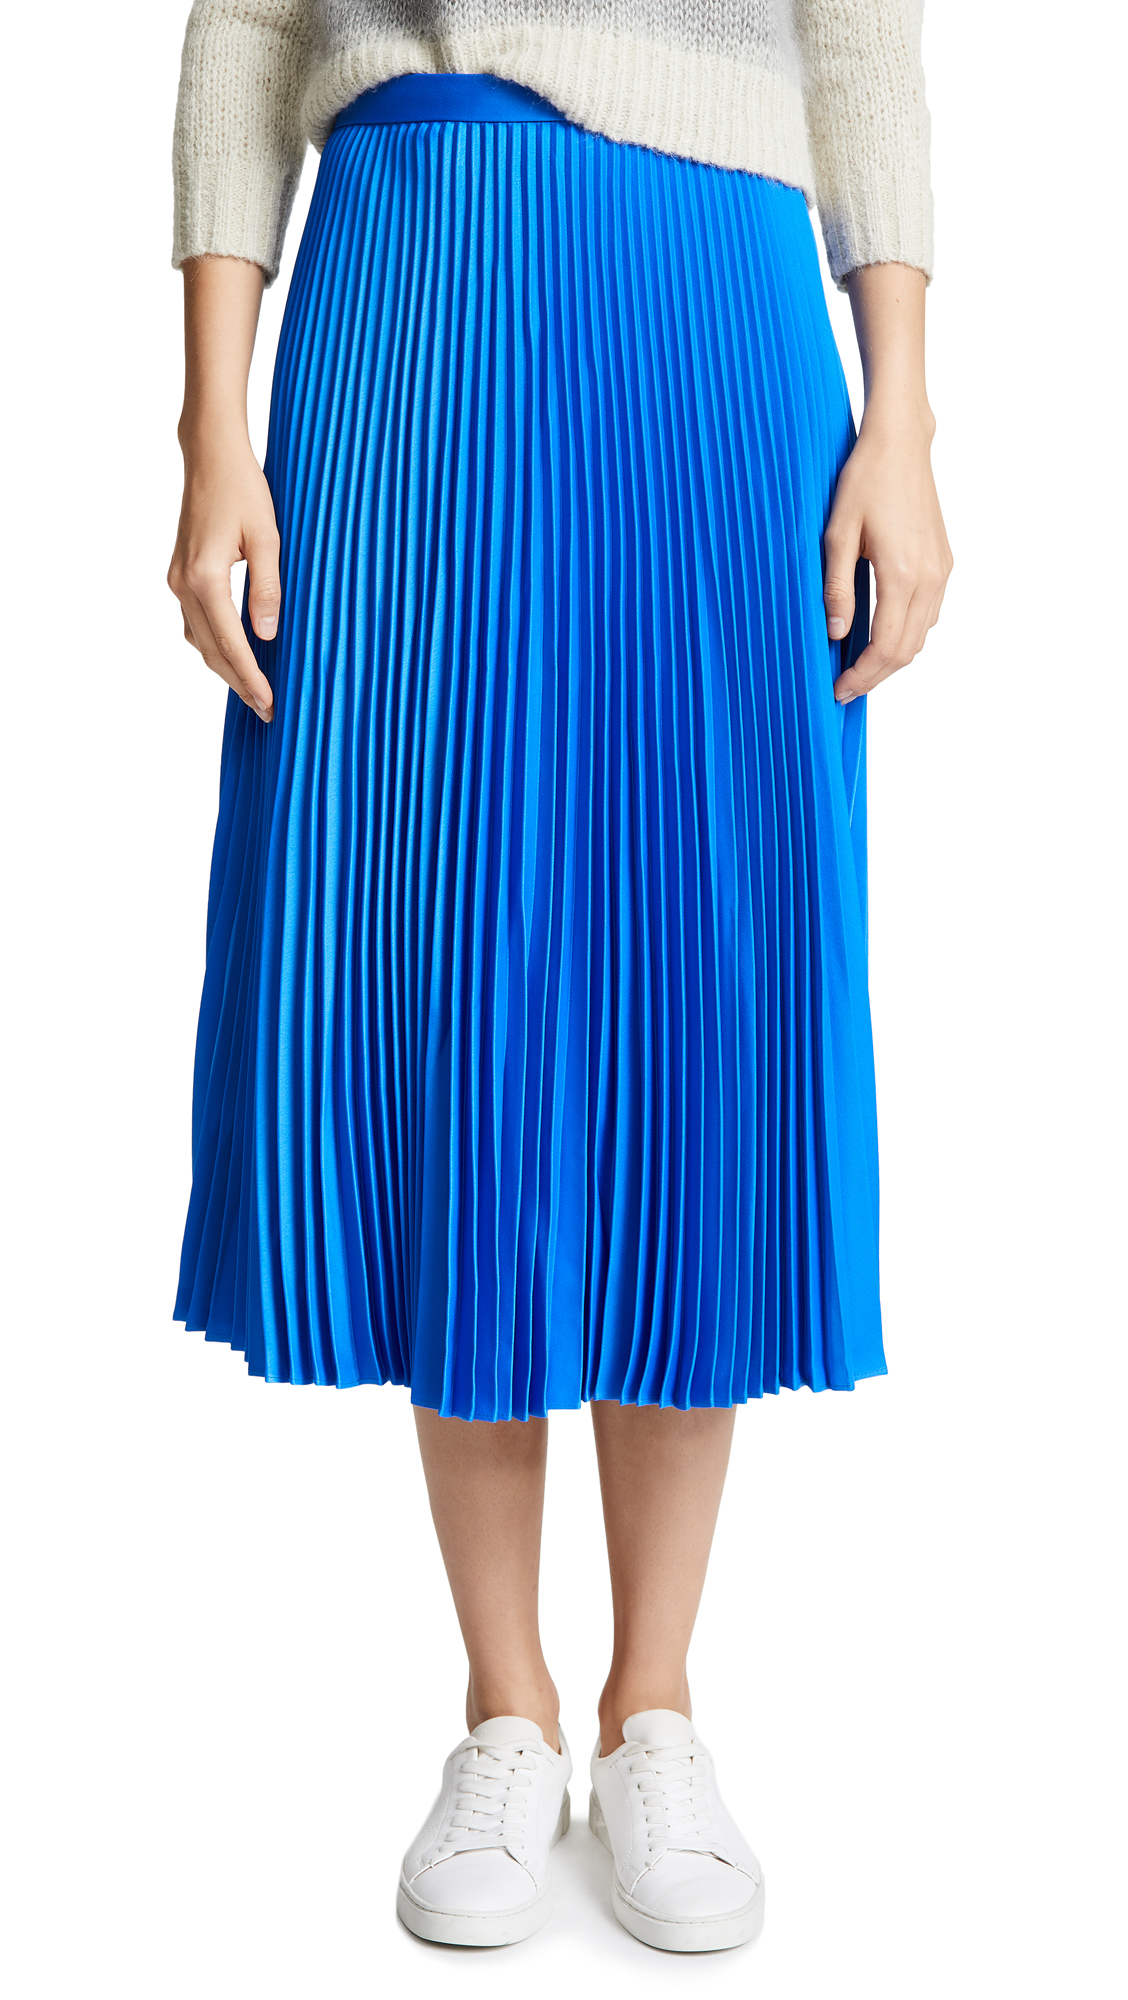 Club Monaco Anninna Skirt In Blue Orchid